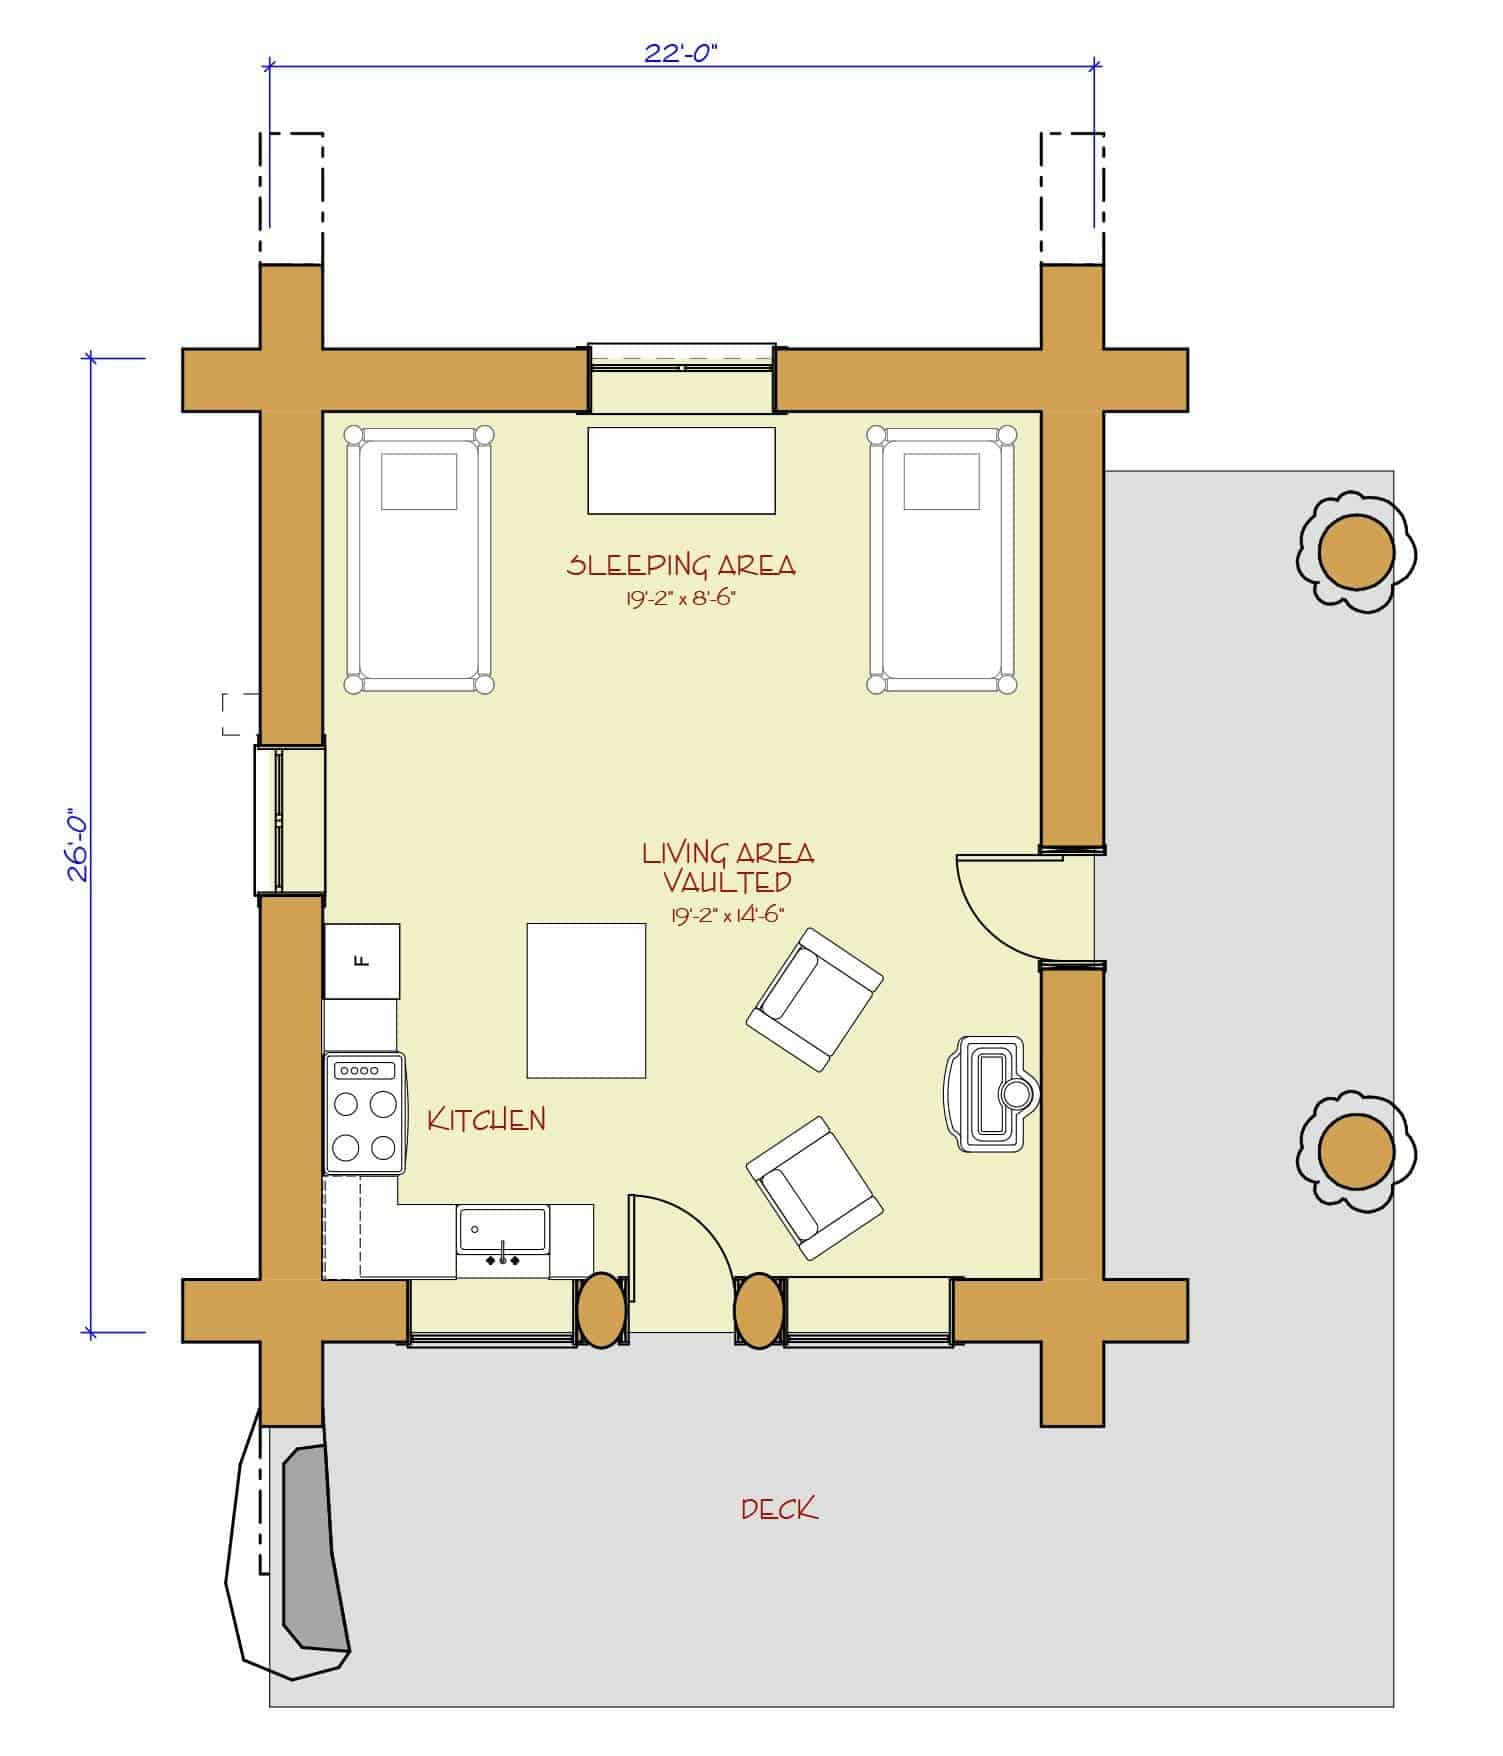 Hunting camp floor plans small hunting camp plans small for Hunting camp house plans